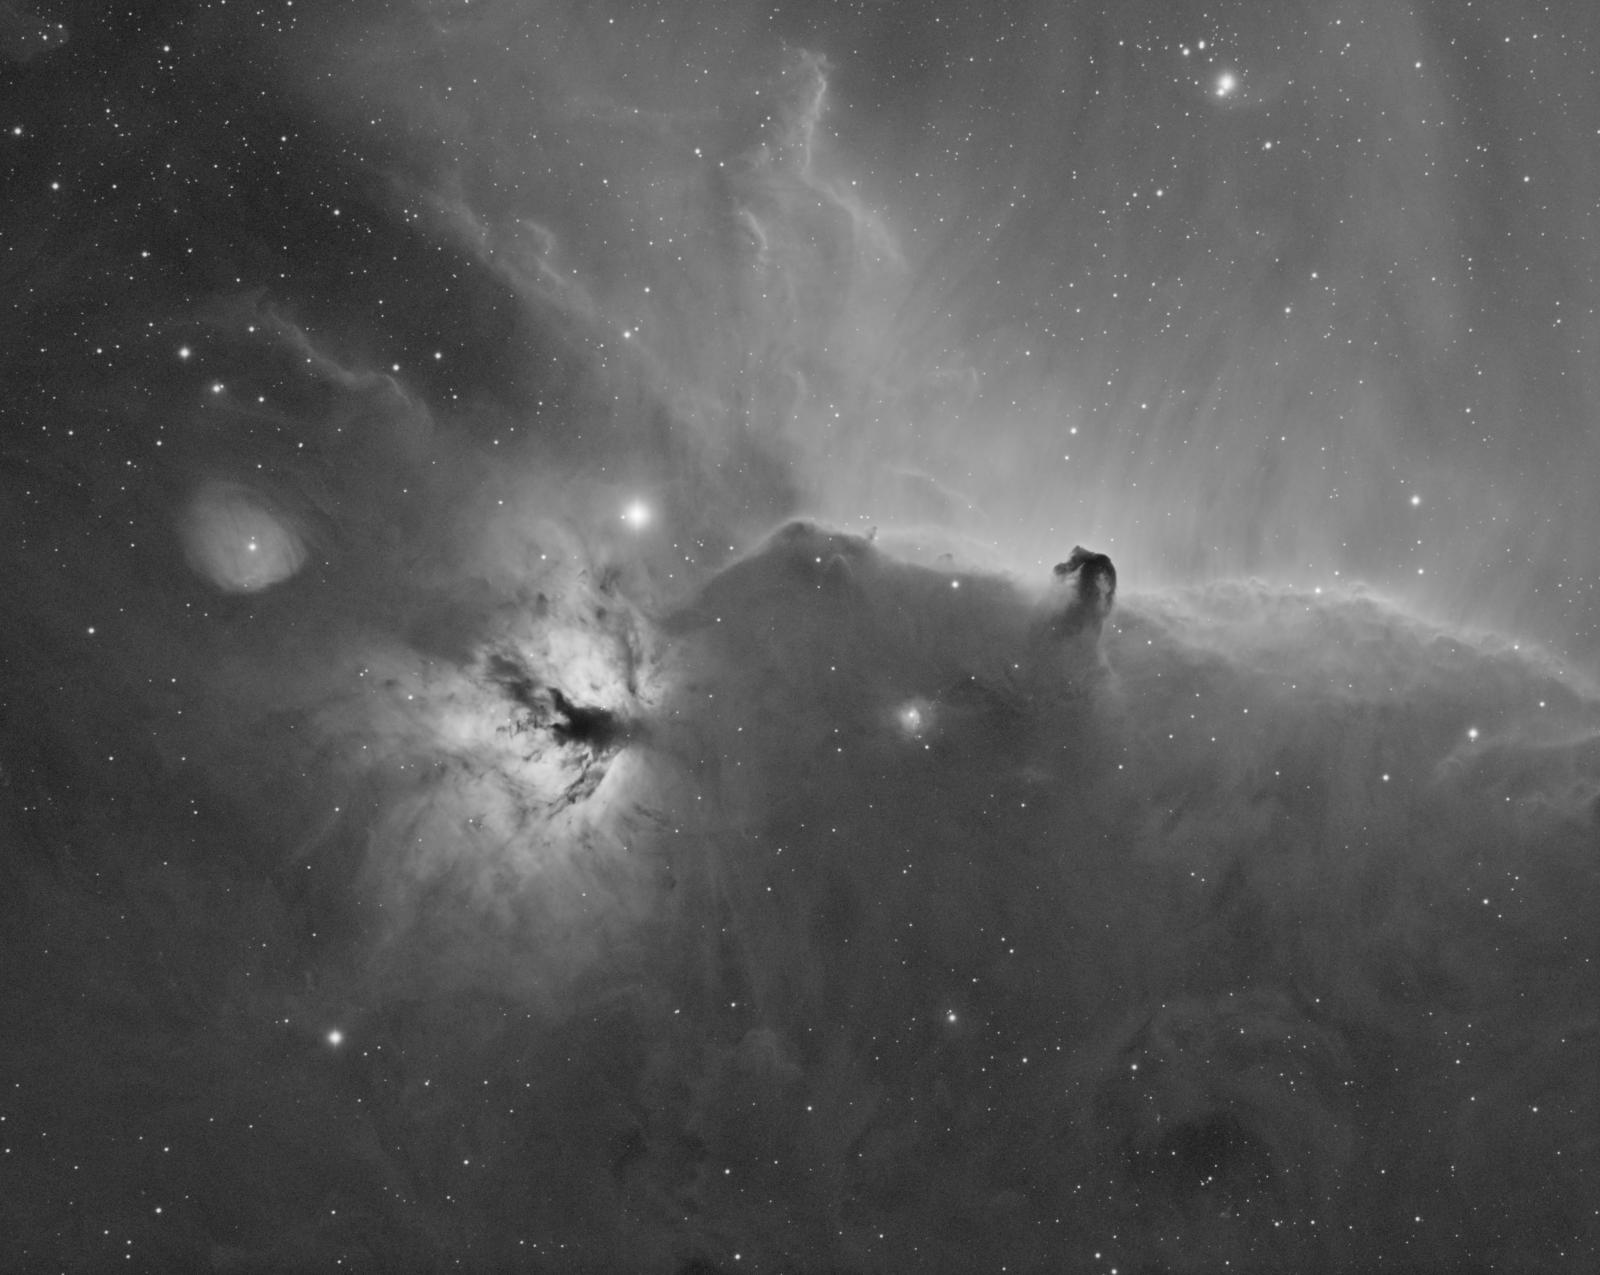 hubble pictures horsehead - HD3236×2375